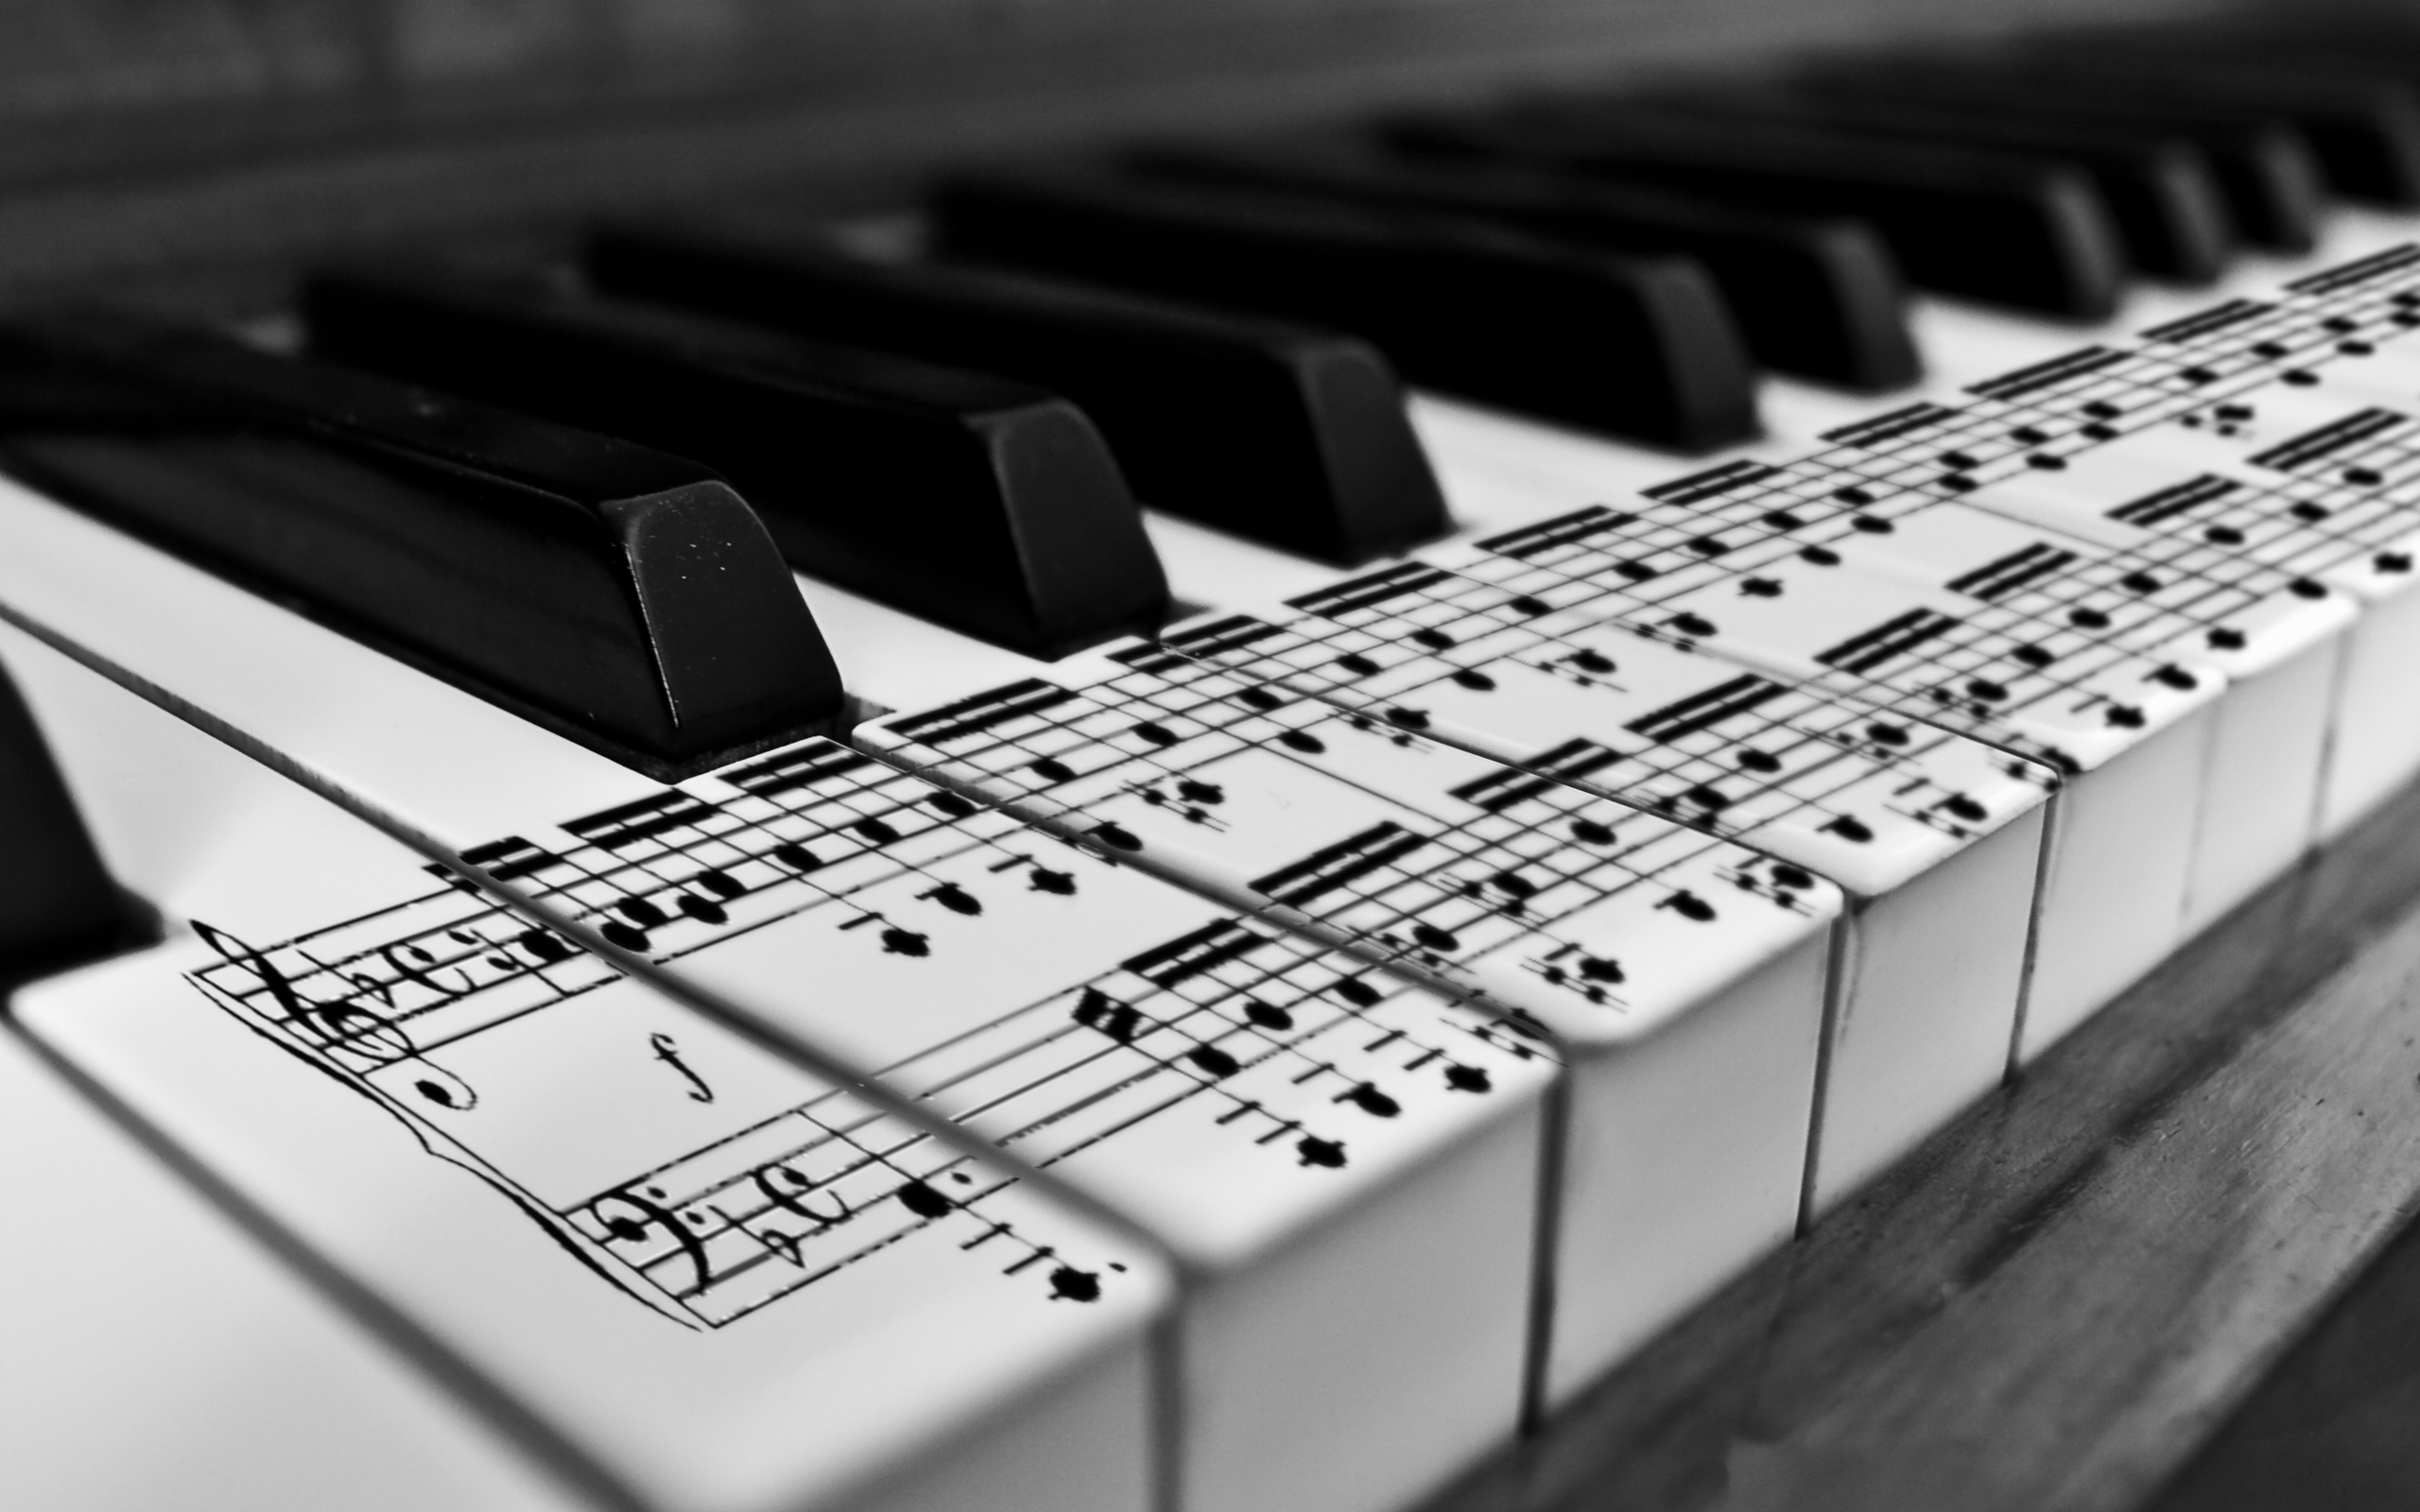 1000+ images about Music on Pinterest | Vintage style, Sheet music